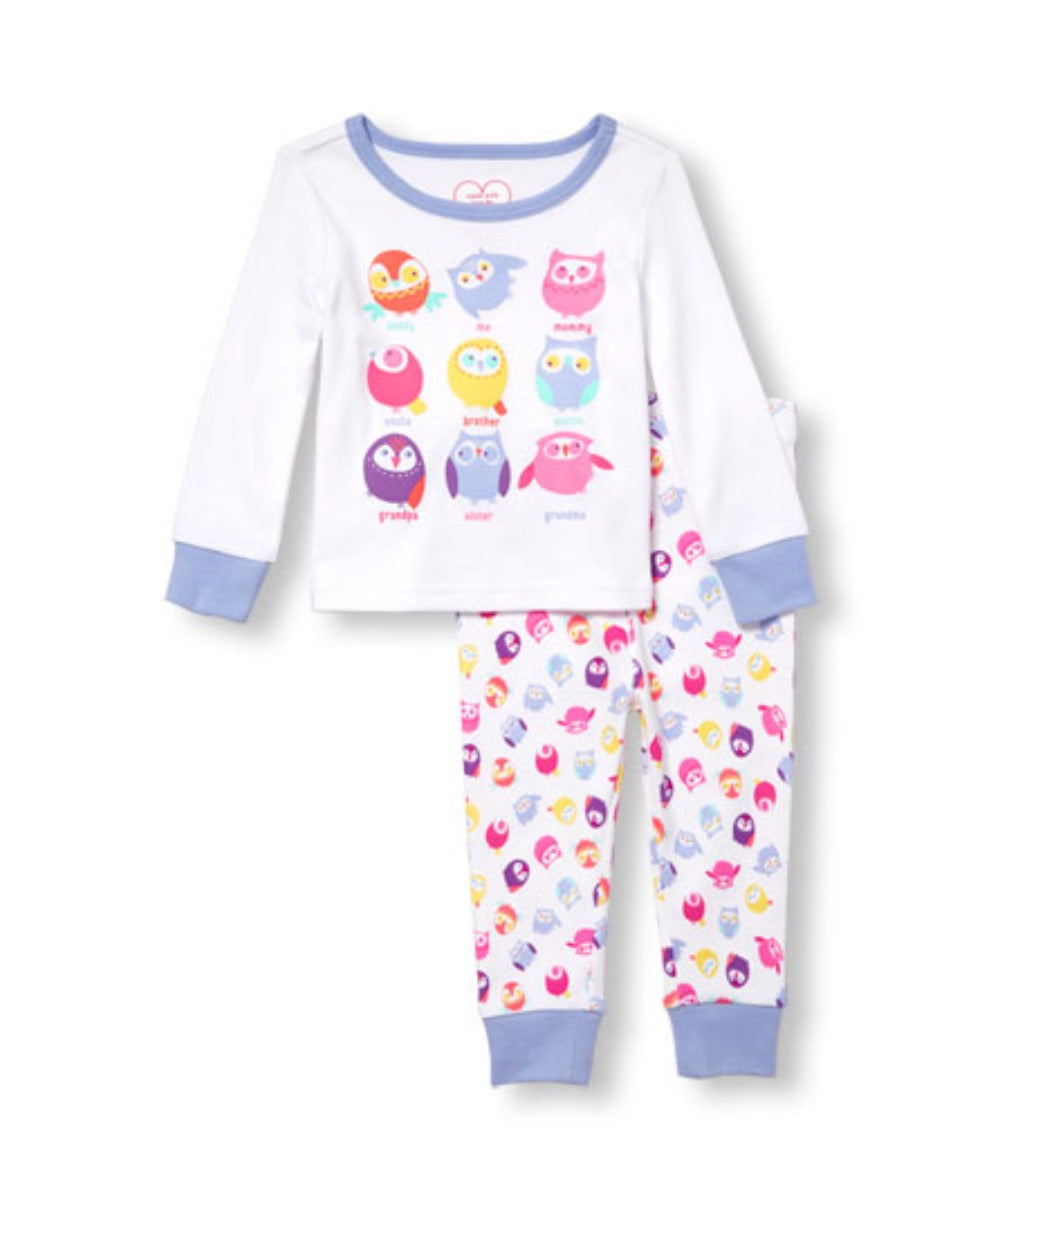 98e9f501f The Children s Place - Baby girl sleepwear – Mom loves you